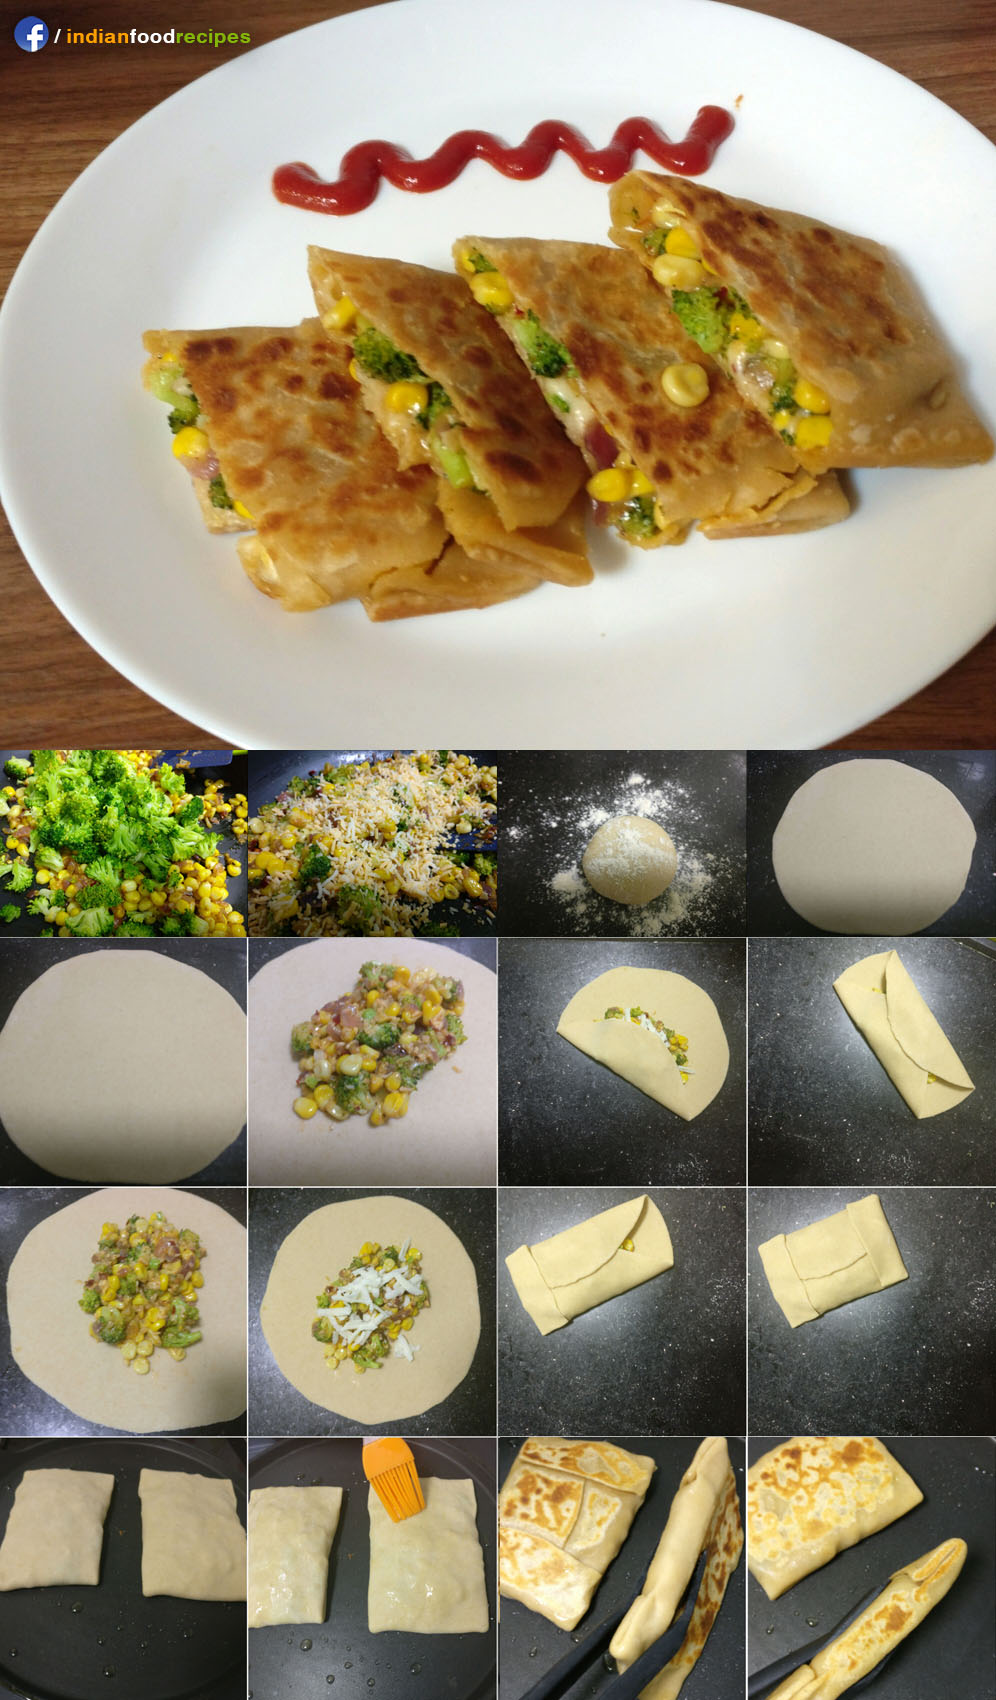 Broccoli recipes step by step pictures indian food recipes cheesy corn broccoli pocket recipe step by step forumfinder Gallery